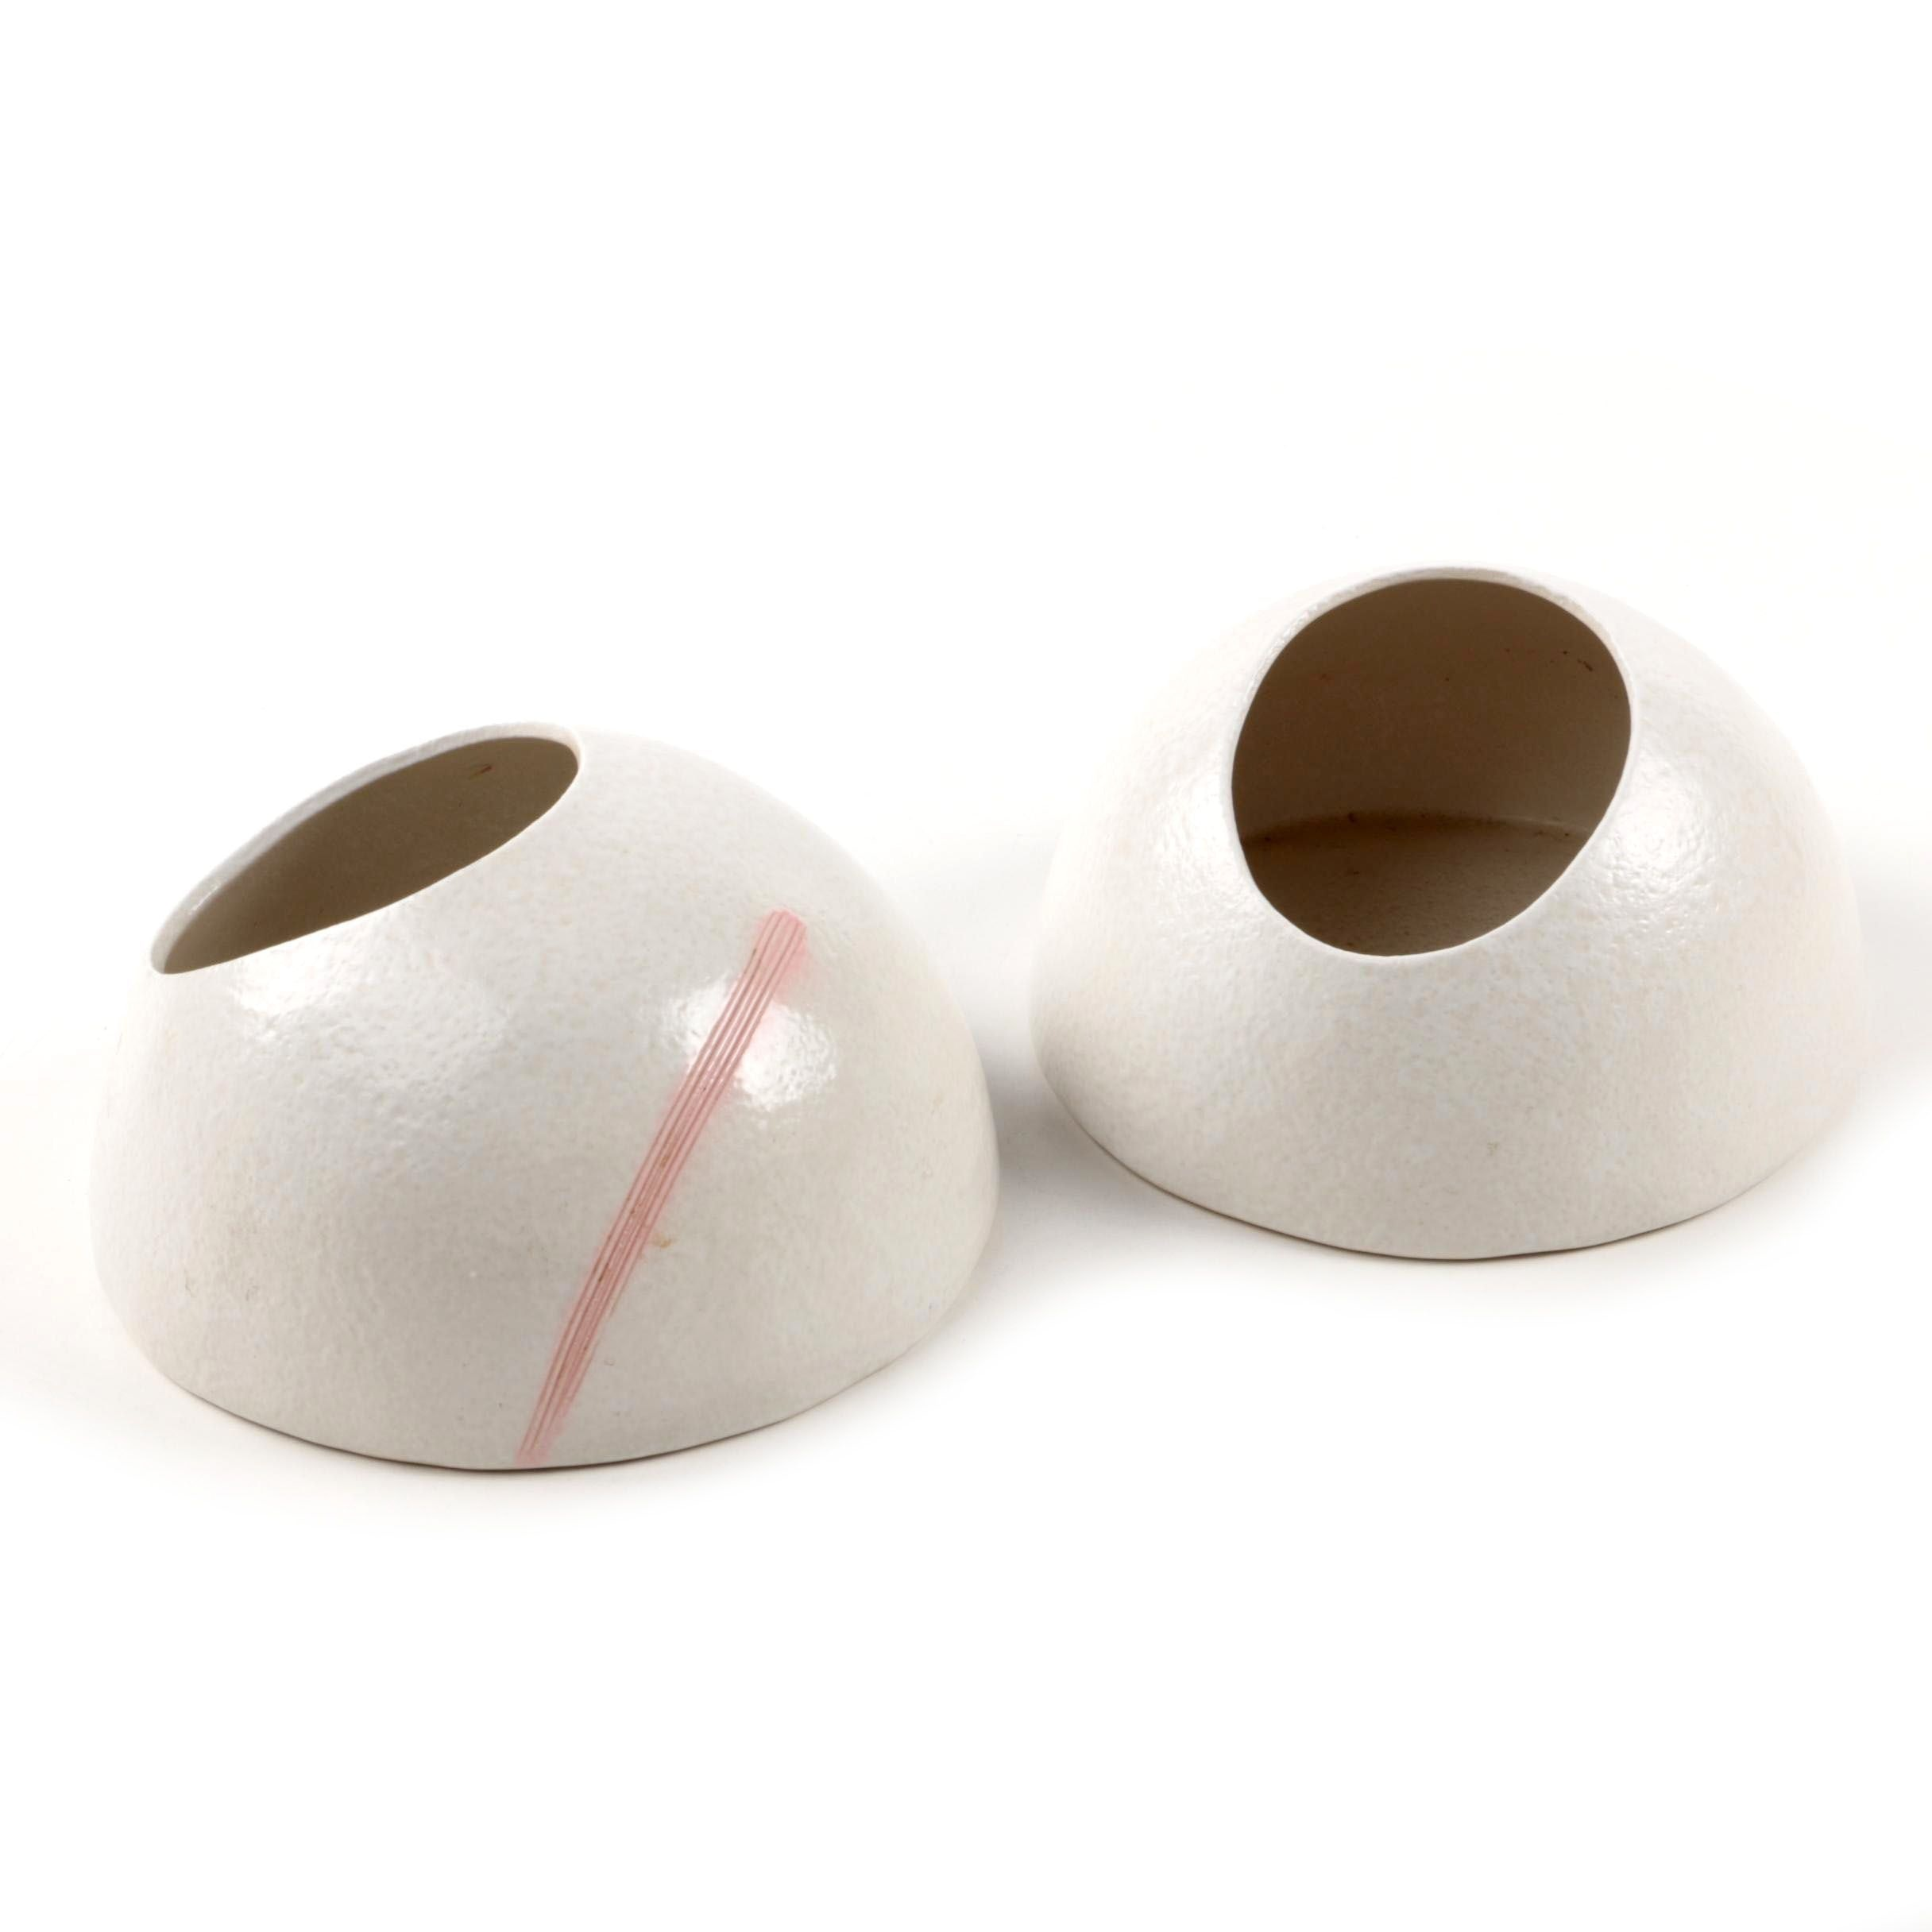 Contemporary Japanese Art Pottery Planters